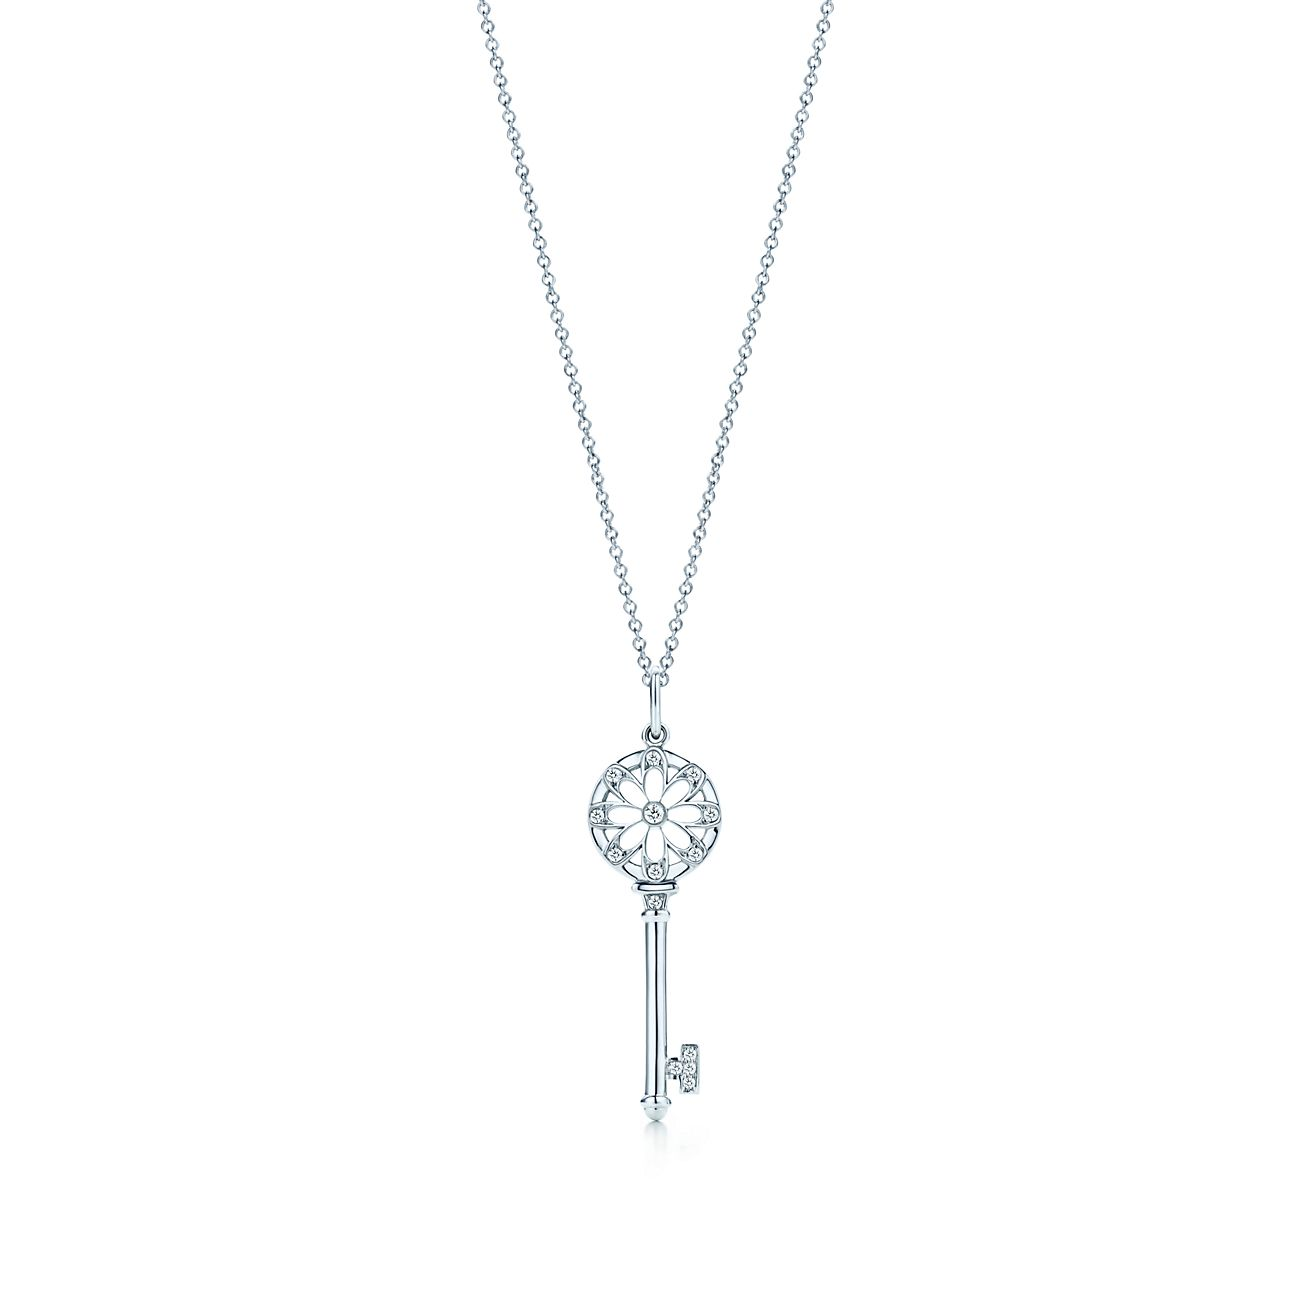 Tiffany Keys floral key pendant in 18k white gold with ...